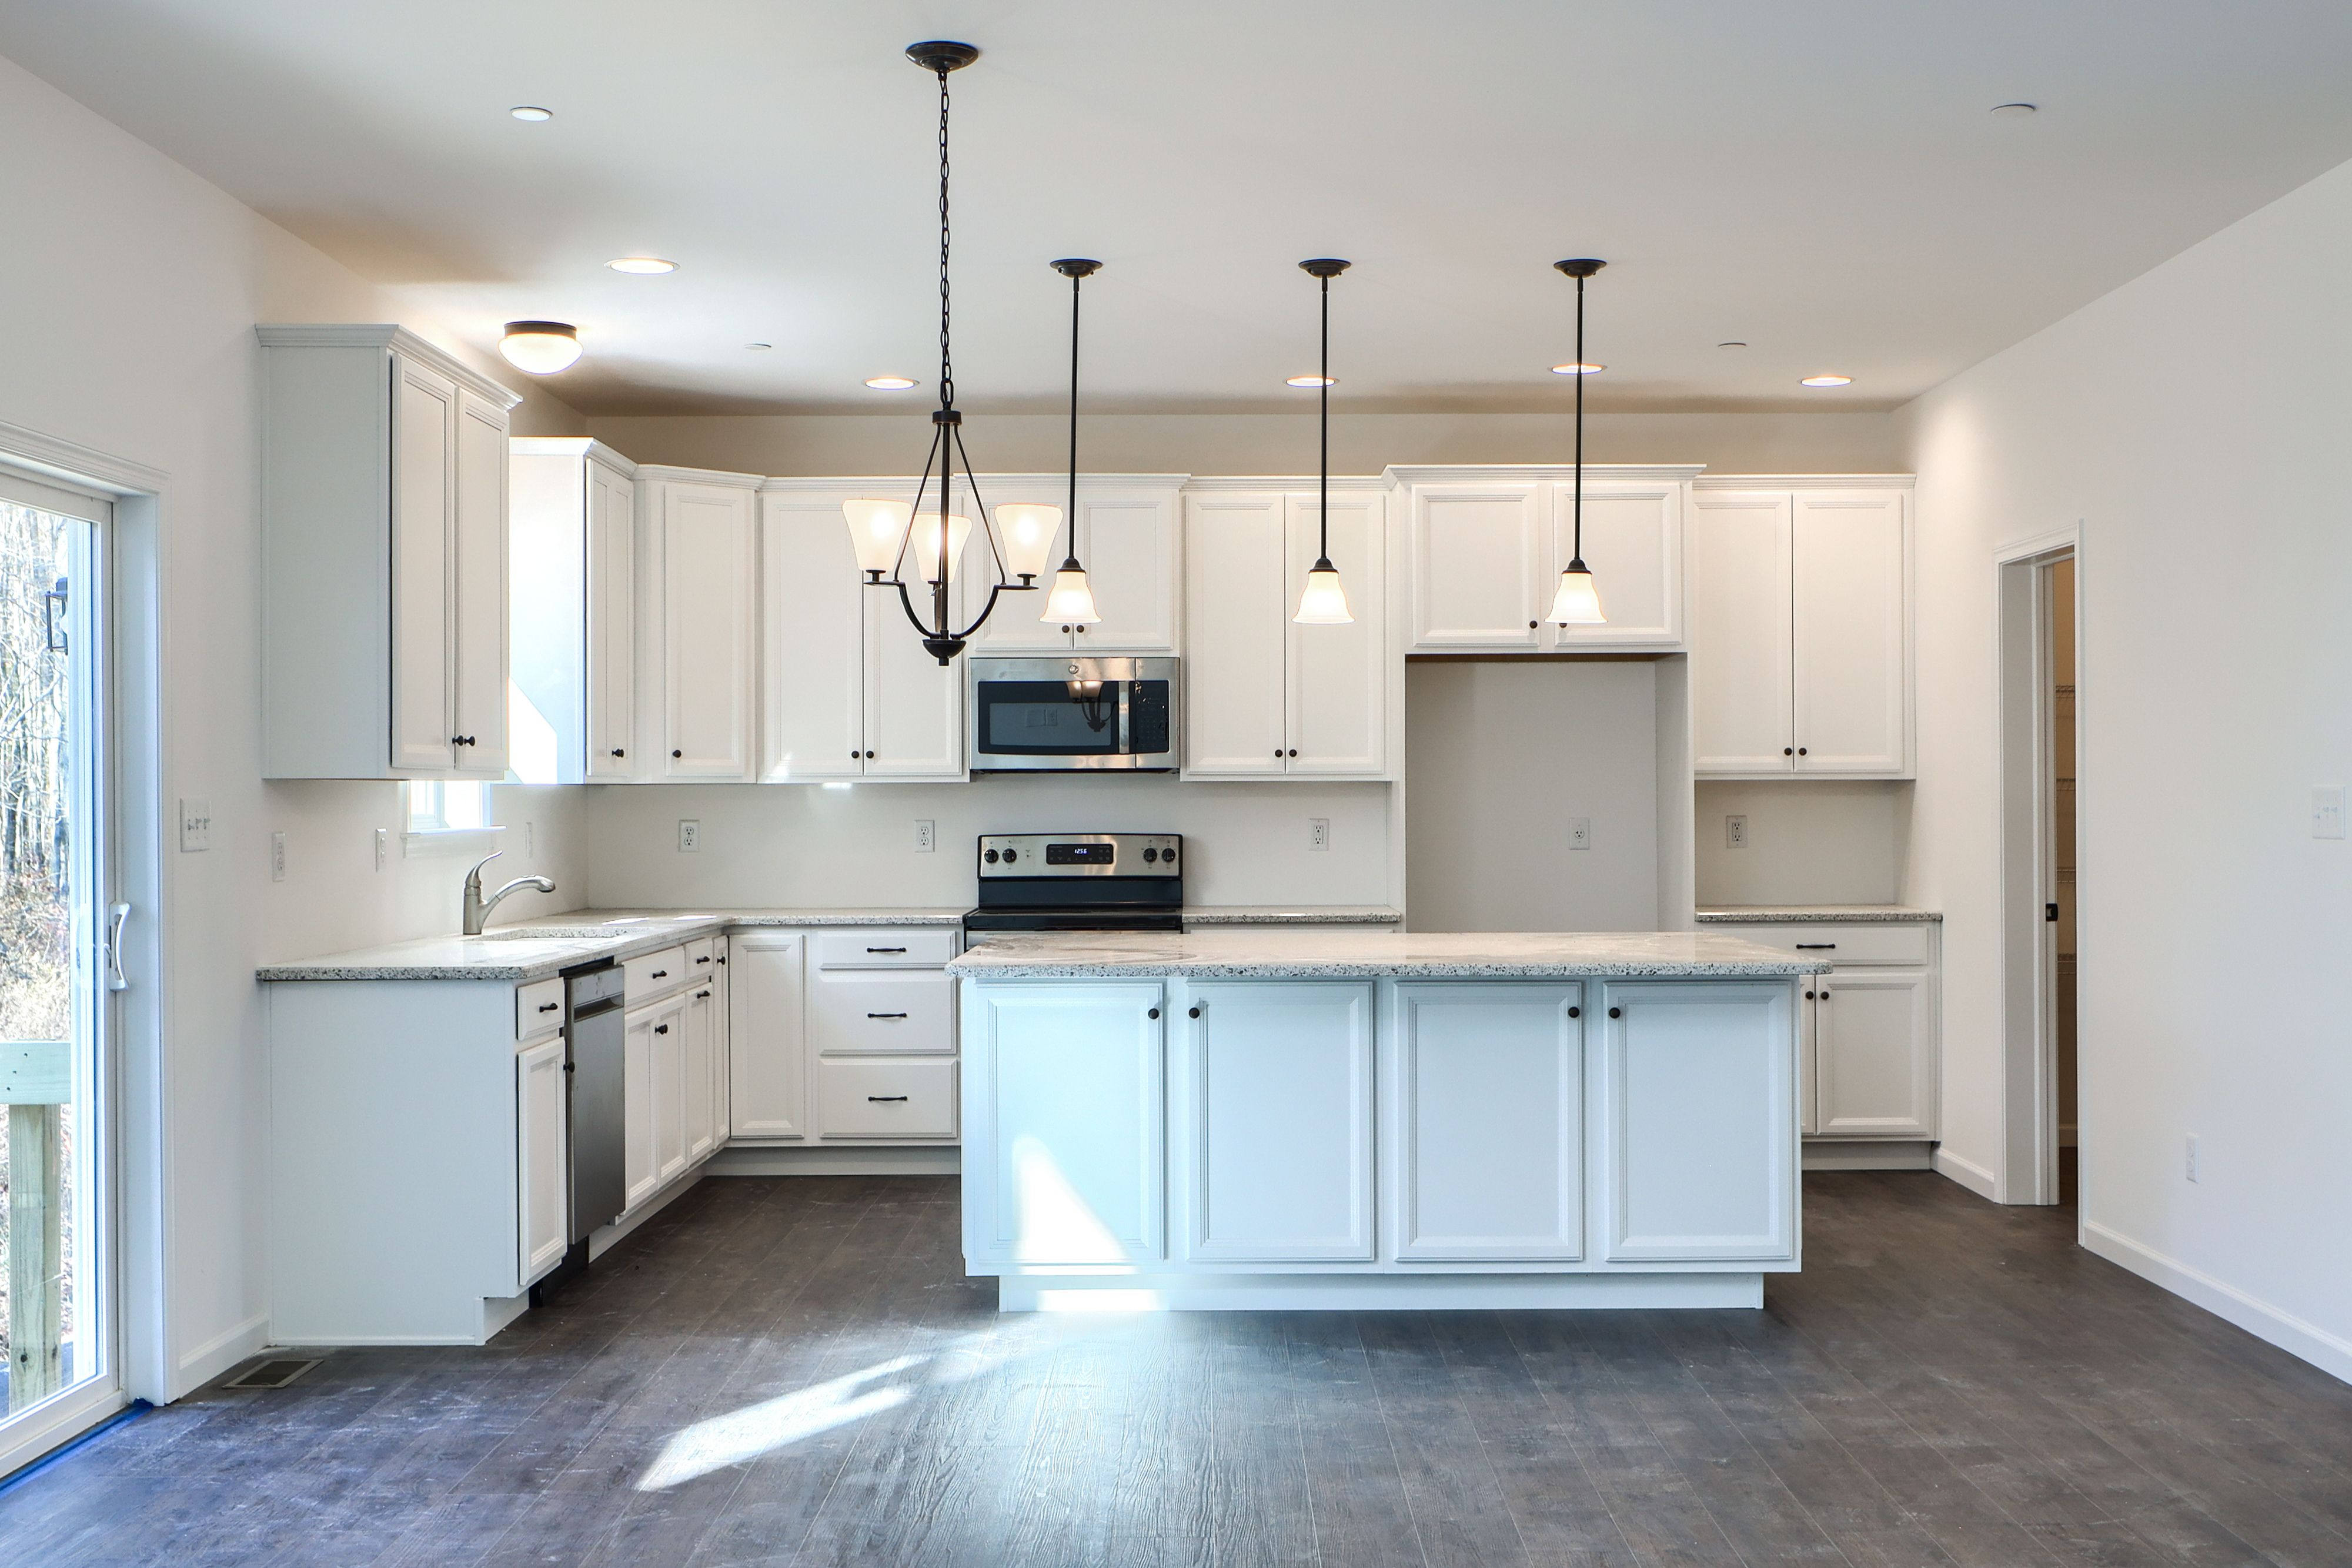 Kitchen featured in the Hawthorne Manor By Keystone Custom Homes in Washington, MD